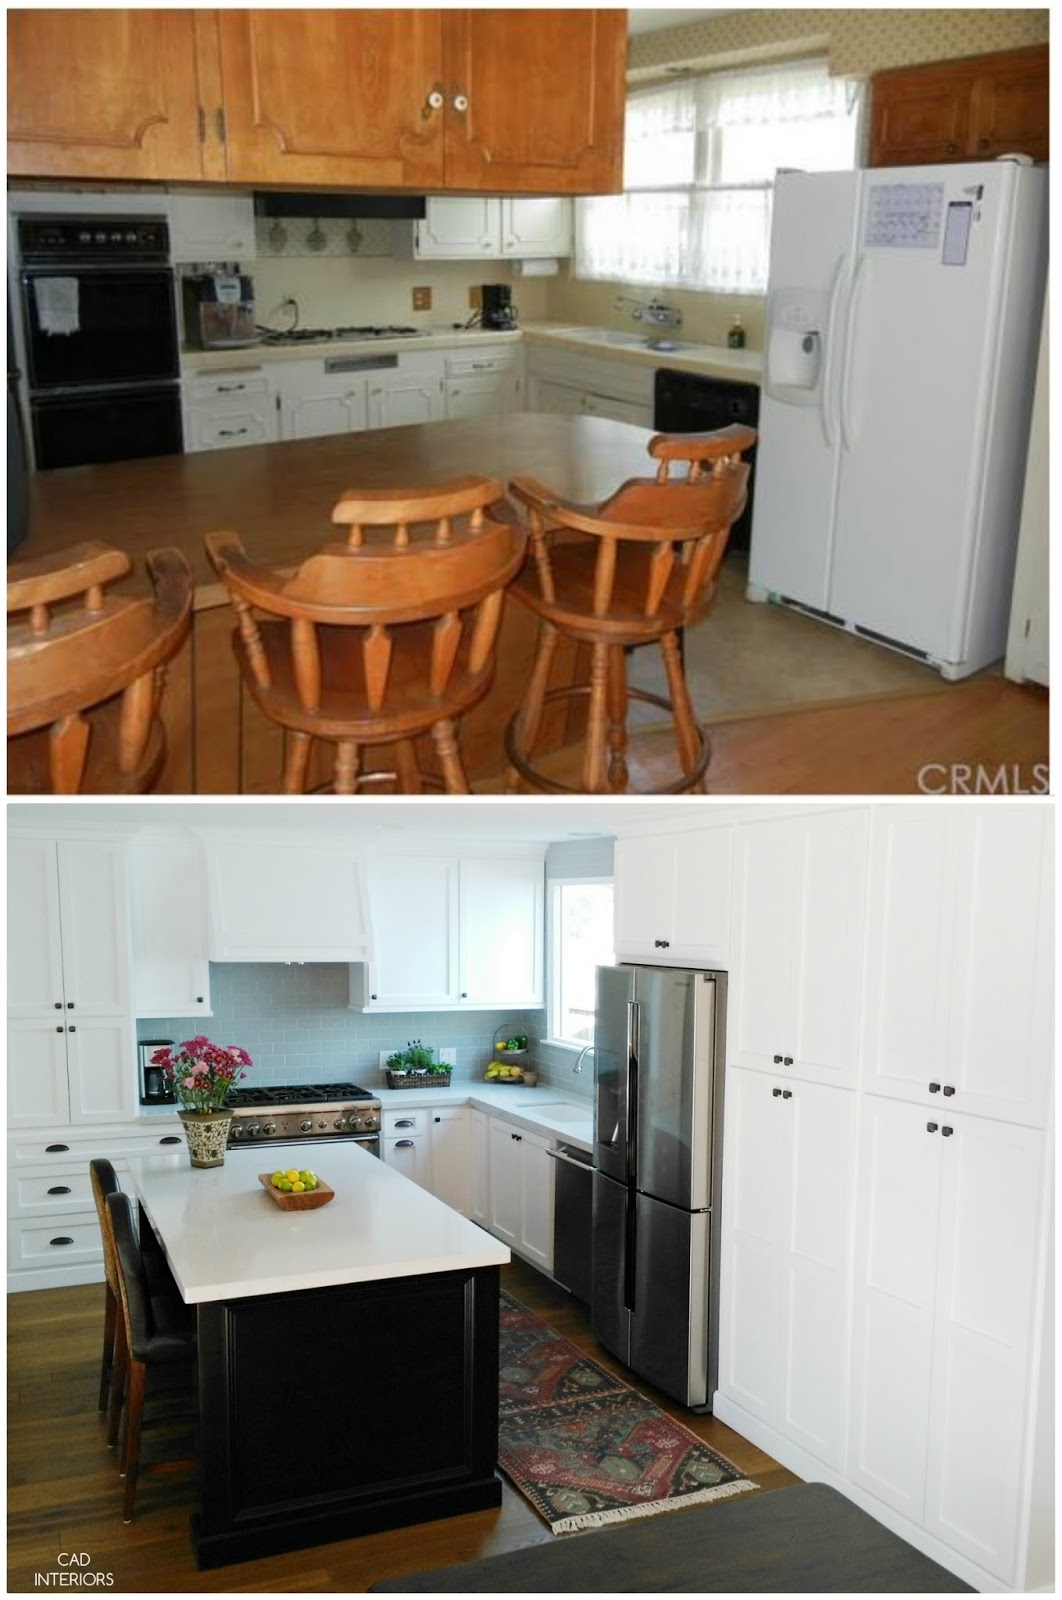 home improvement remodel renovation kitchen interior design modern transitional farmhouse white black kitchen